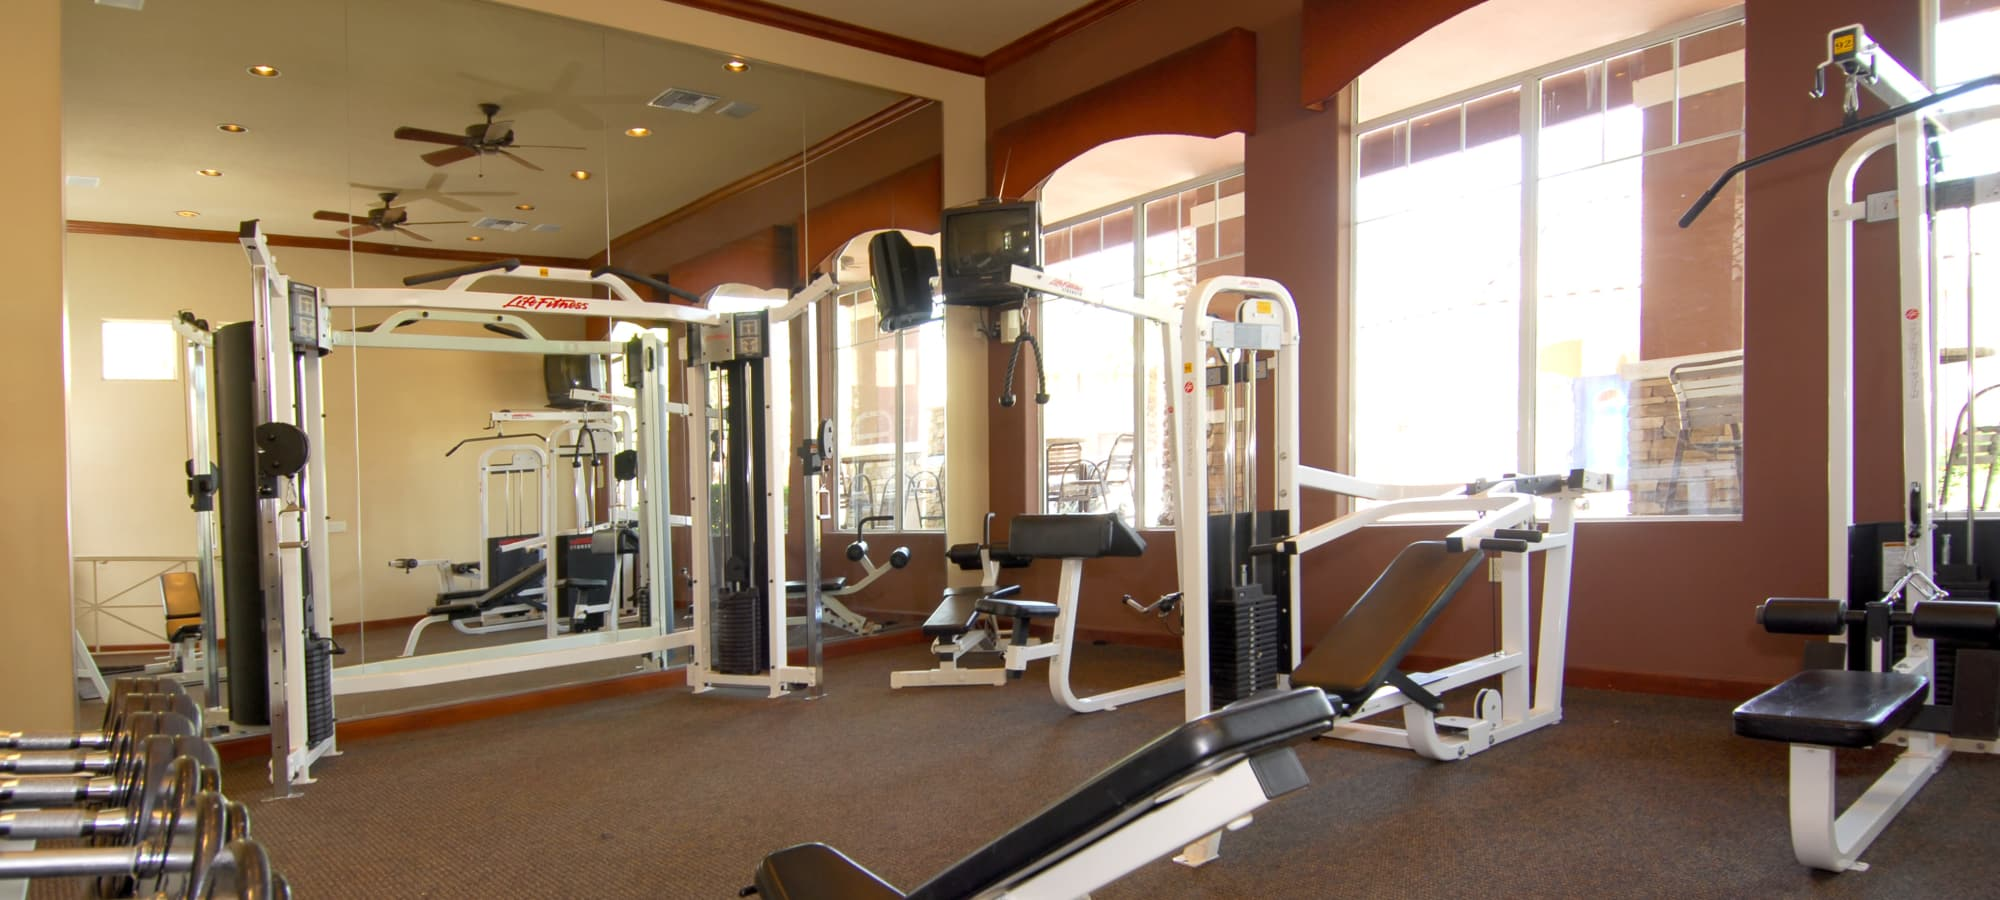 State-of-the-art fitness center with tons of equipment at Remington Ranch in Litchfield Park, Arizona